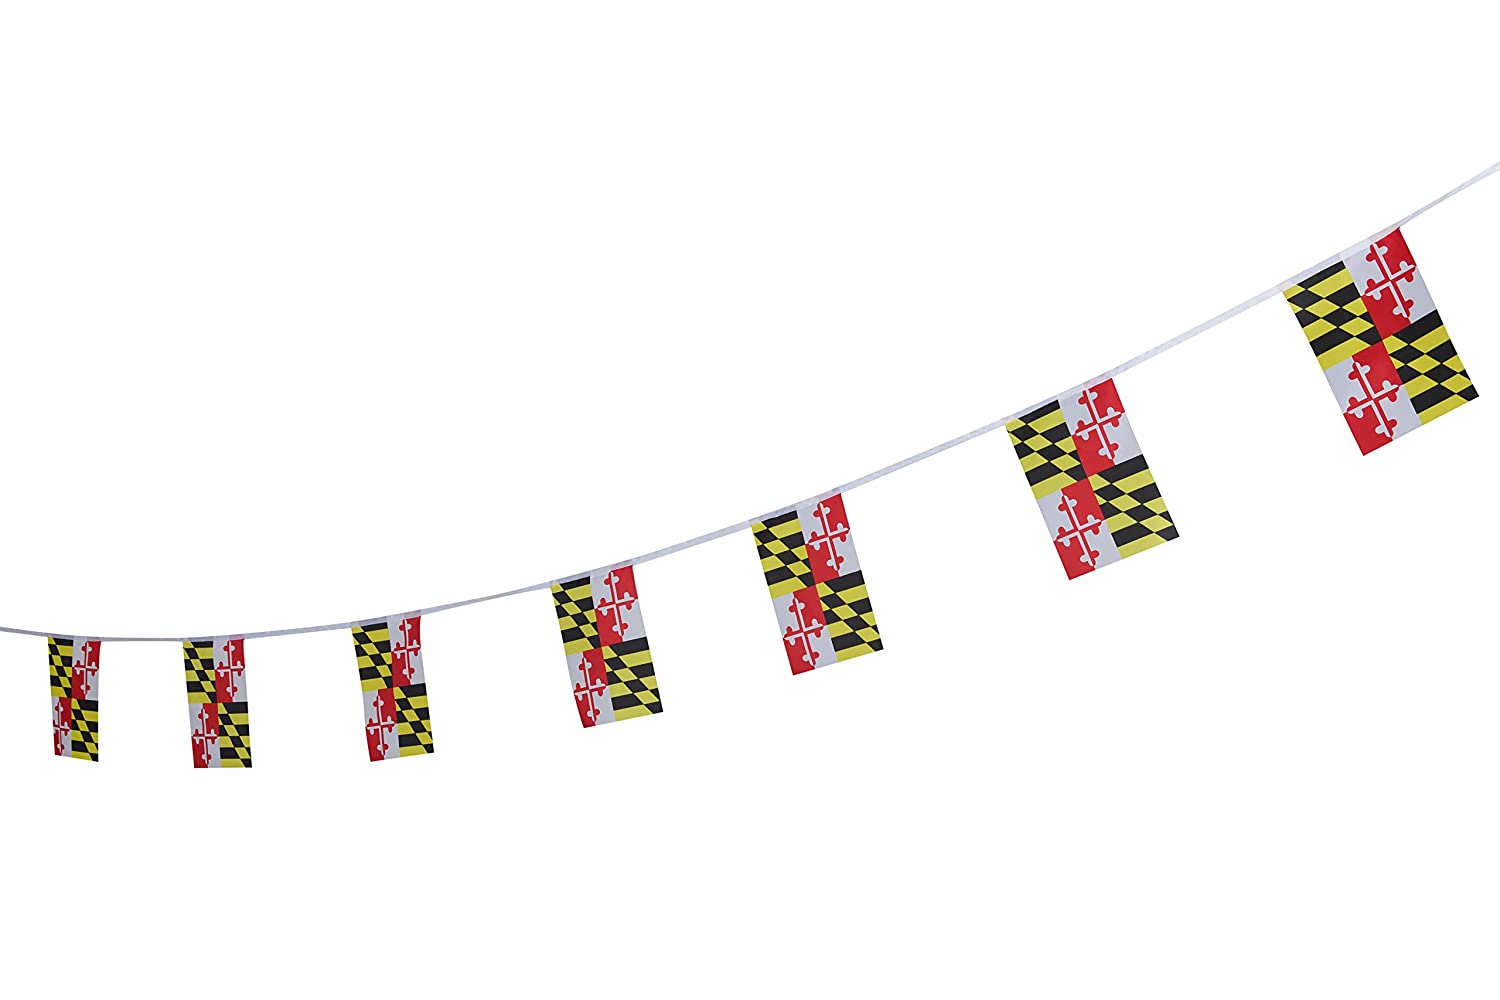 Kind Girl 100 Feet Maryland State Flag,Pennant Flags Banner String,Party Decorations for Grand Opening,Party Decorations,Indoor and Outdoor Flags,for School Event,Sport Events,Festival (Maryland)